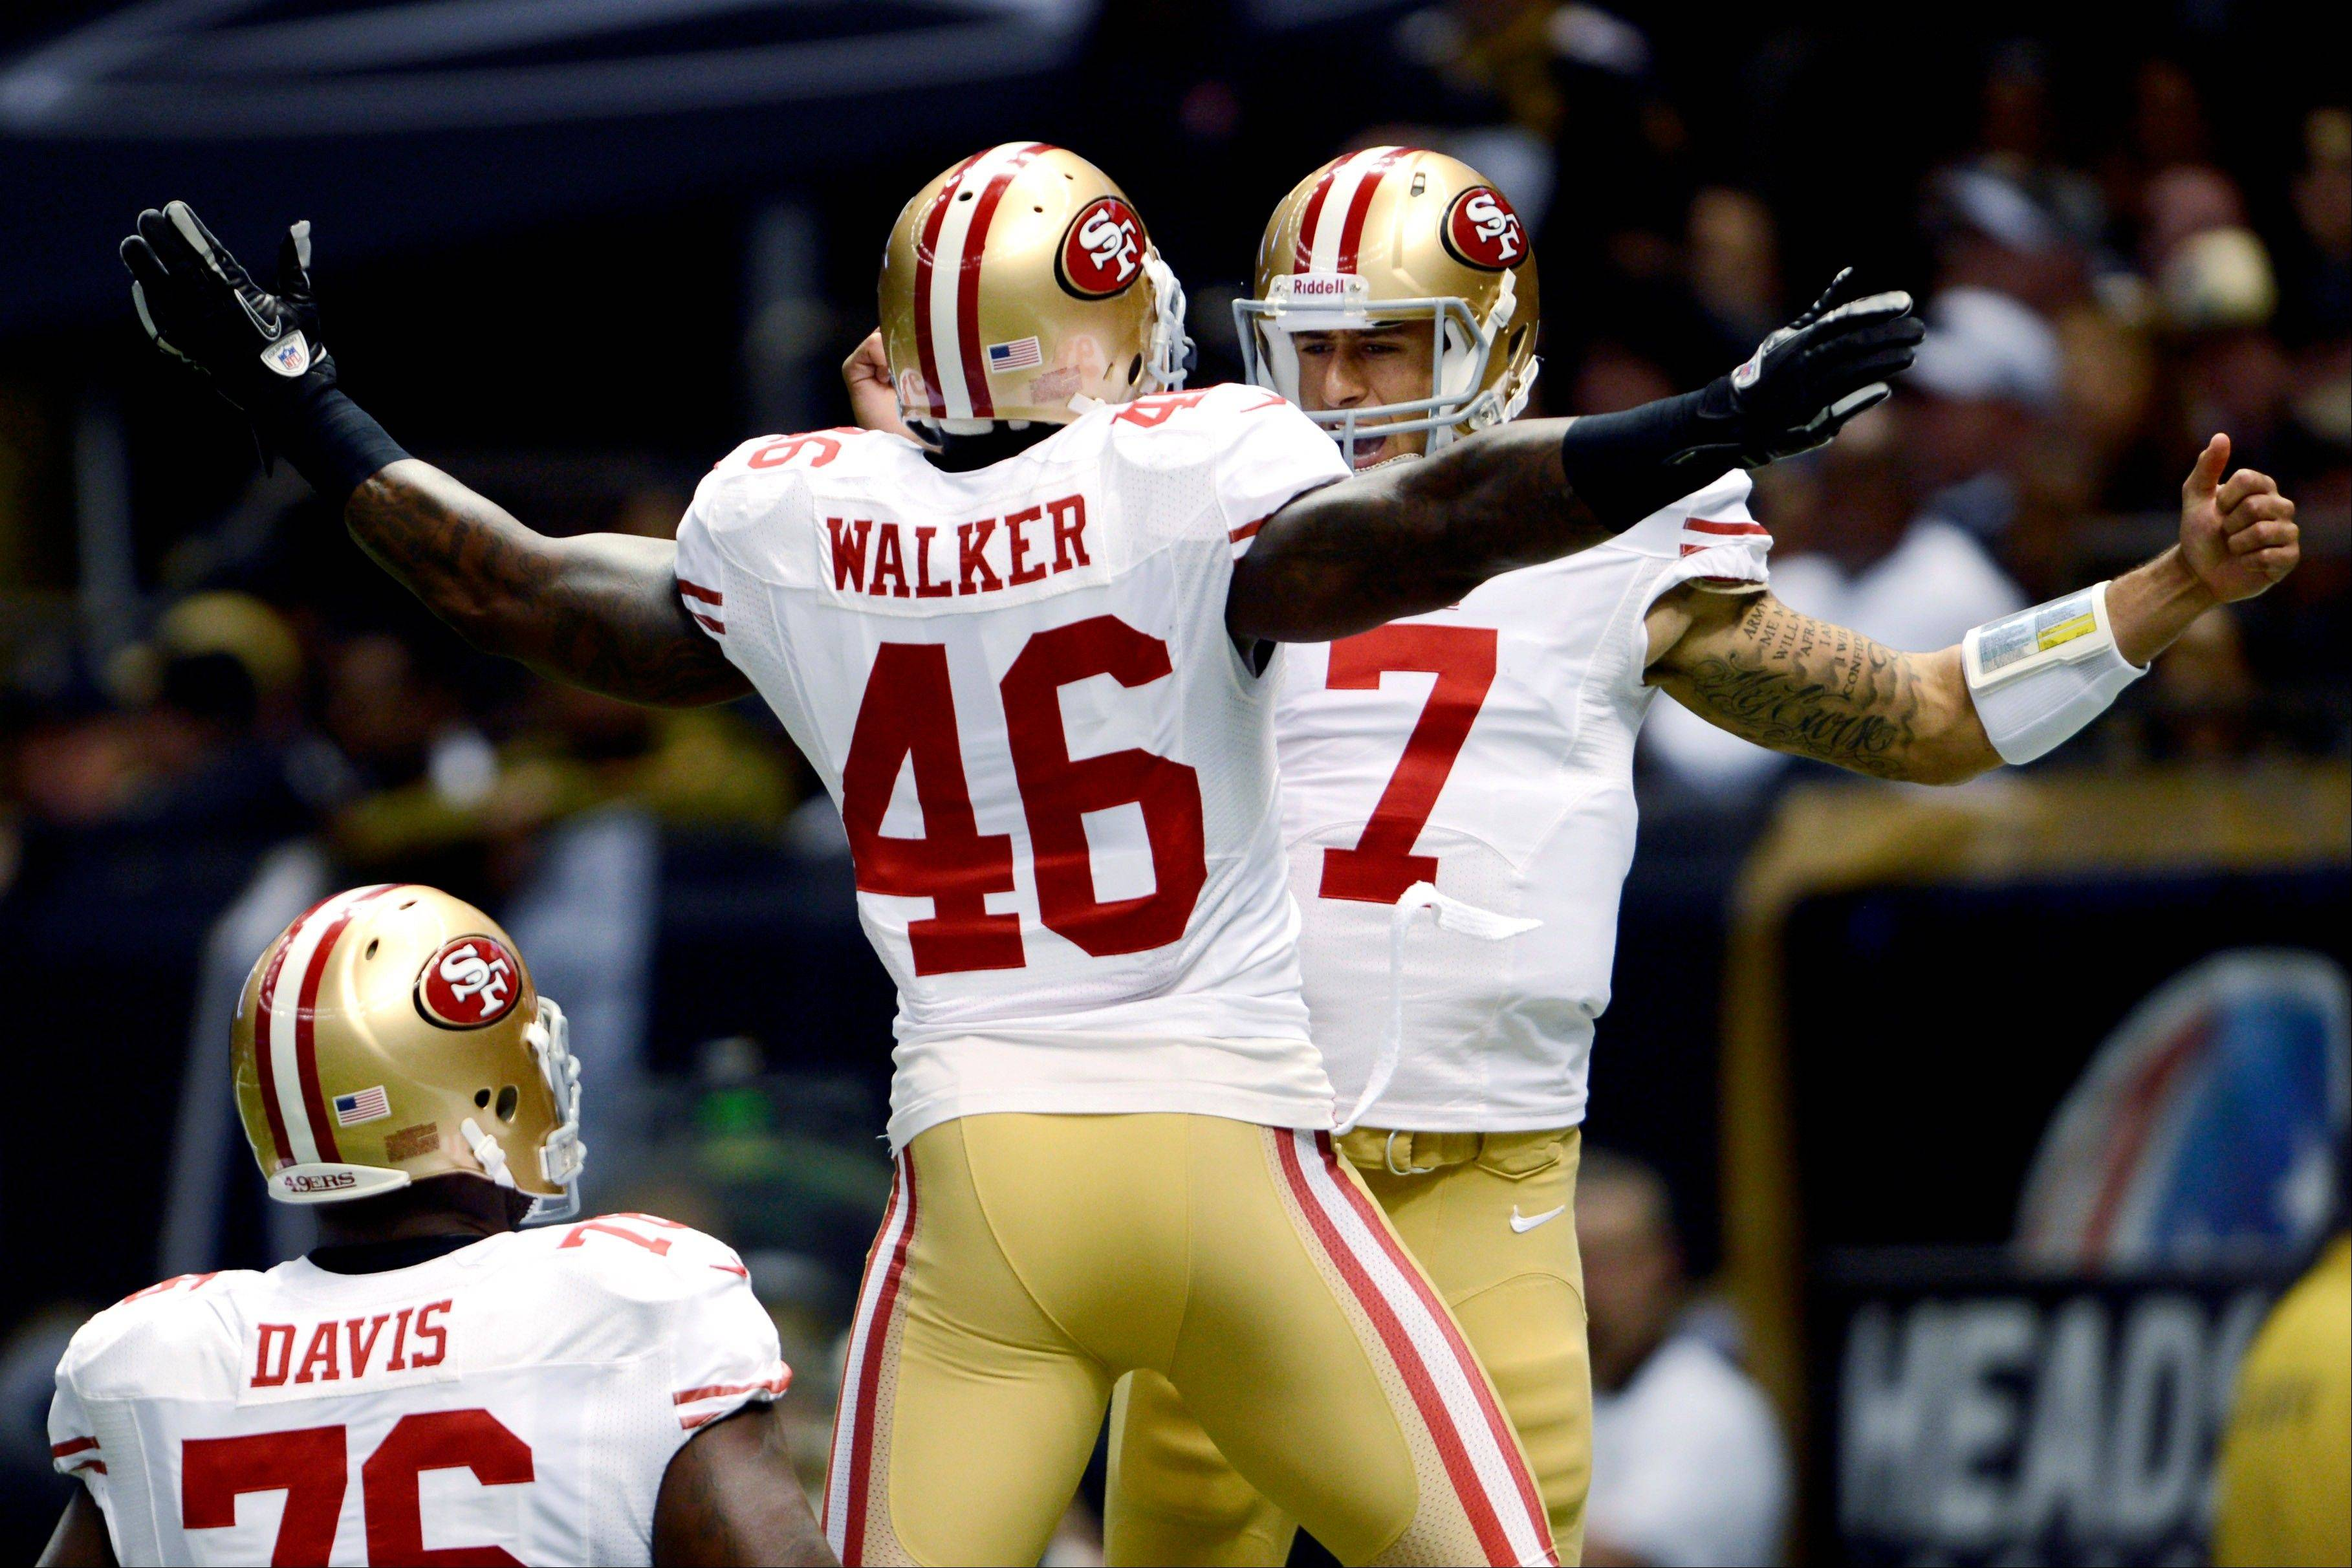 San Francisco 49ers quarterback Colin Kaepernick (7) celebrates his rushing touchdown with tight end Delanie Walker (46) in the first half against the New Orleans Saints in New Orleans, Sunday. The 49ers won 31-21.